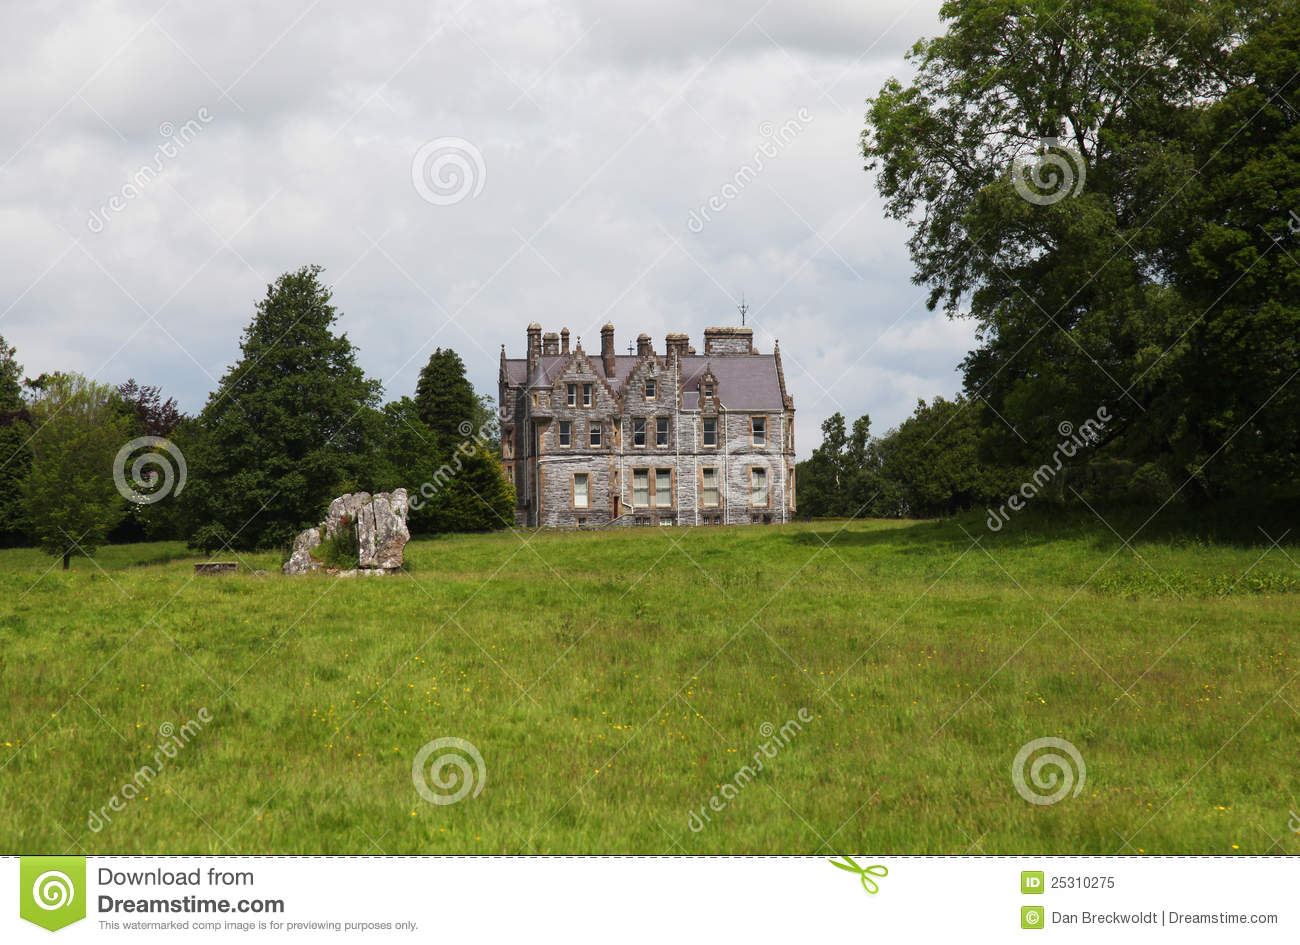 Blarney house in ireland royalty free stock photo image for The blarney house plan